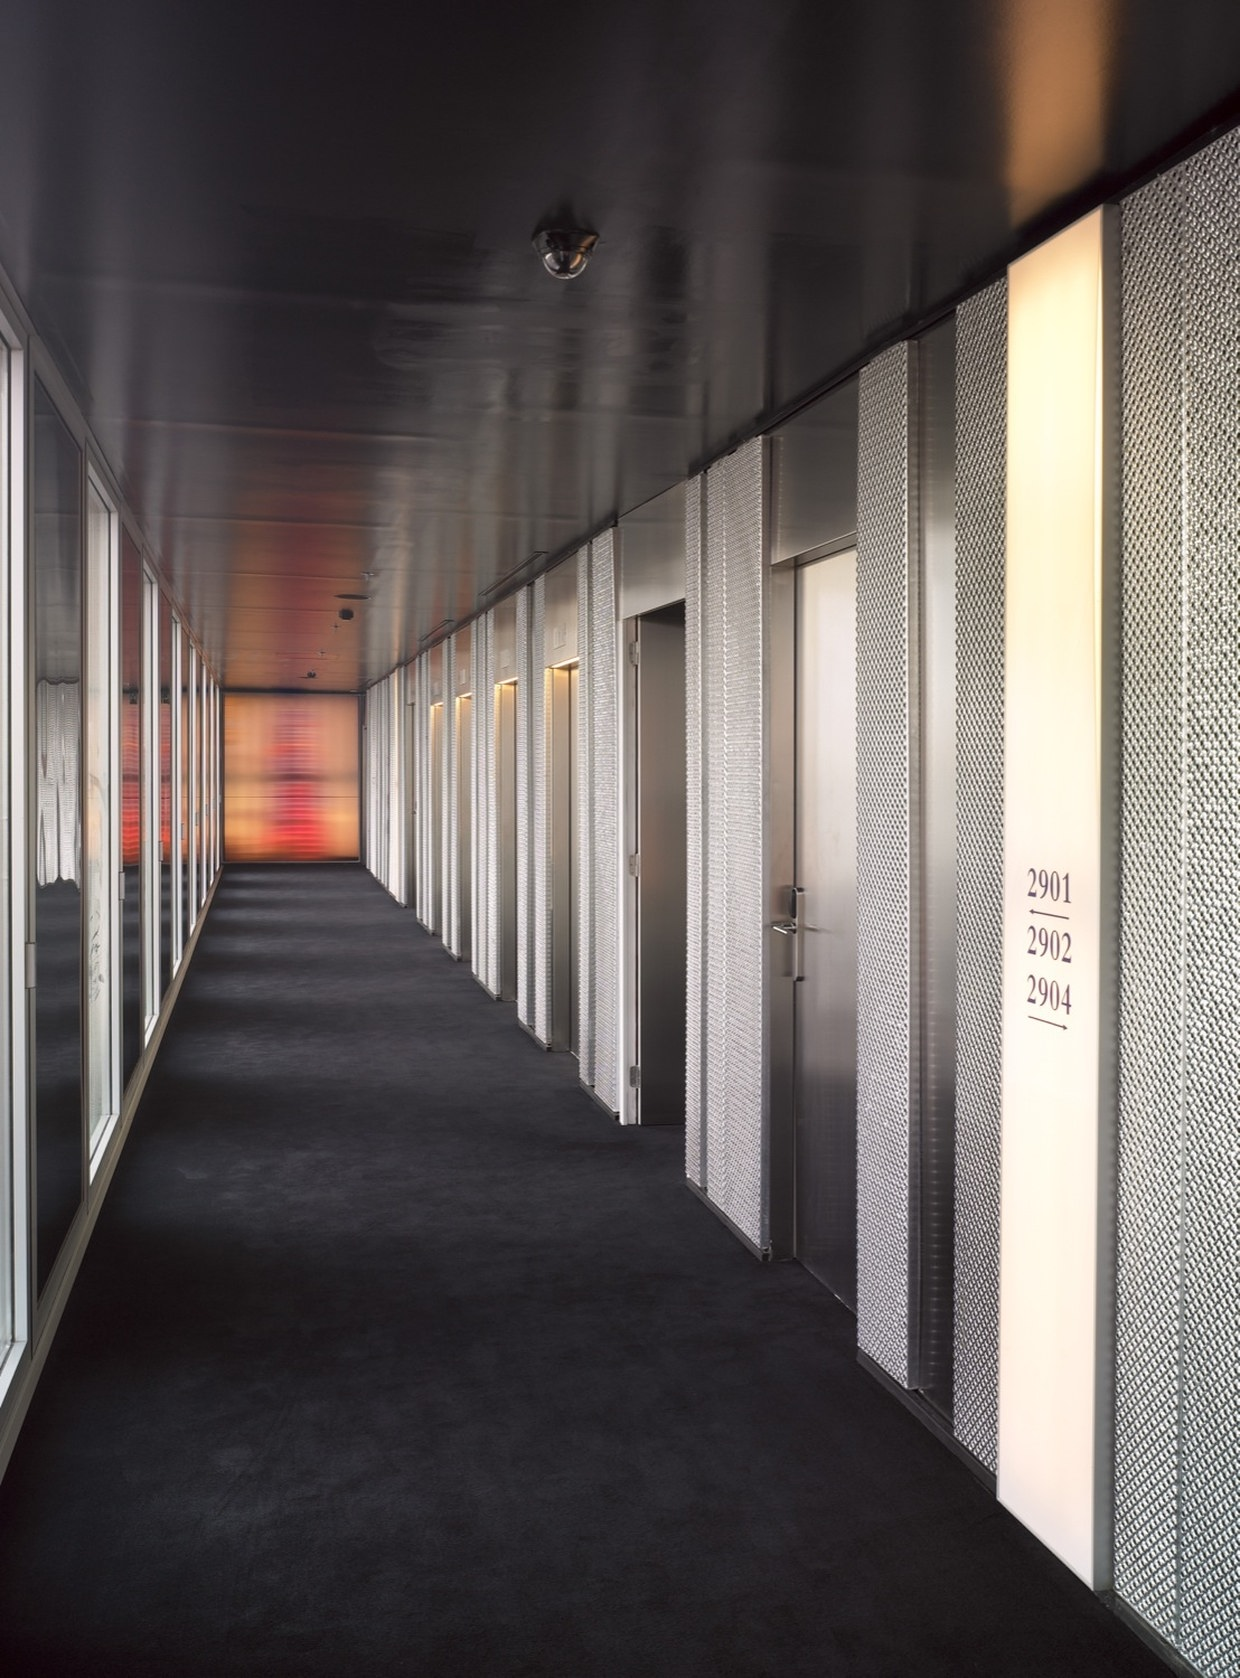 Hotel me barcelona by dominique perrault architecture for Modern hotels near me